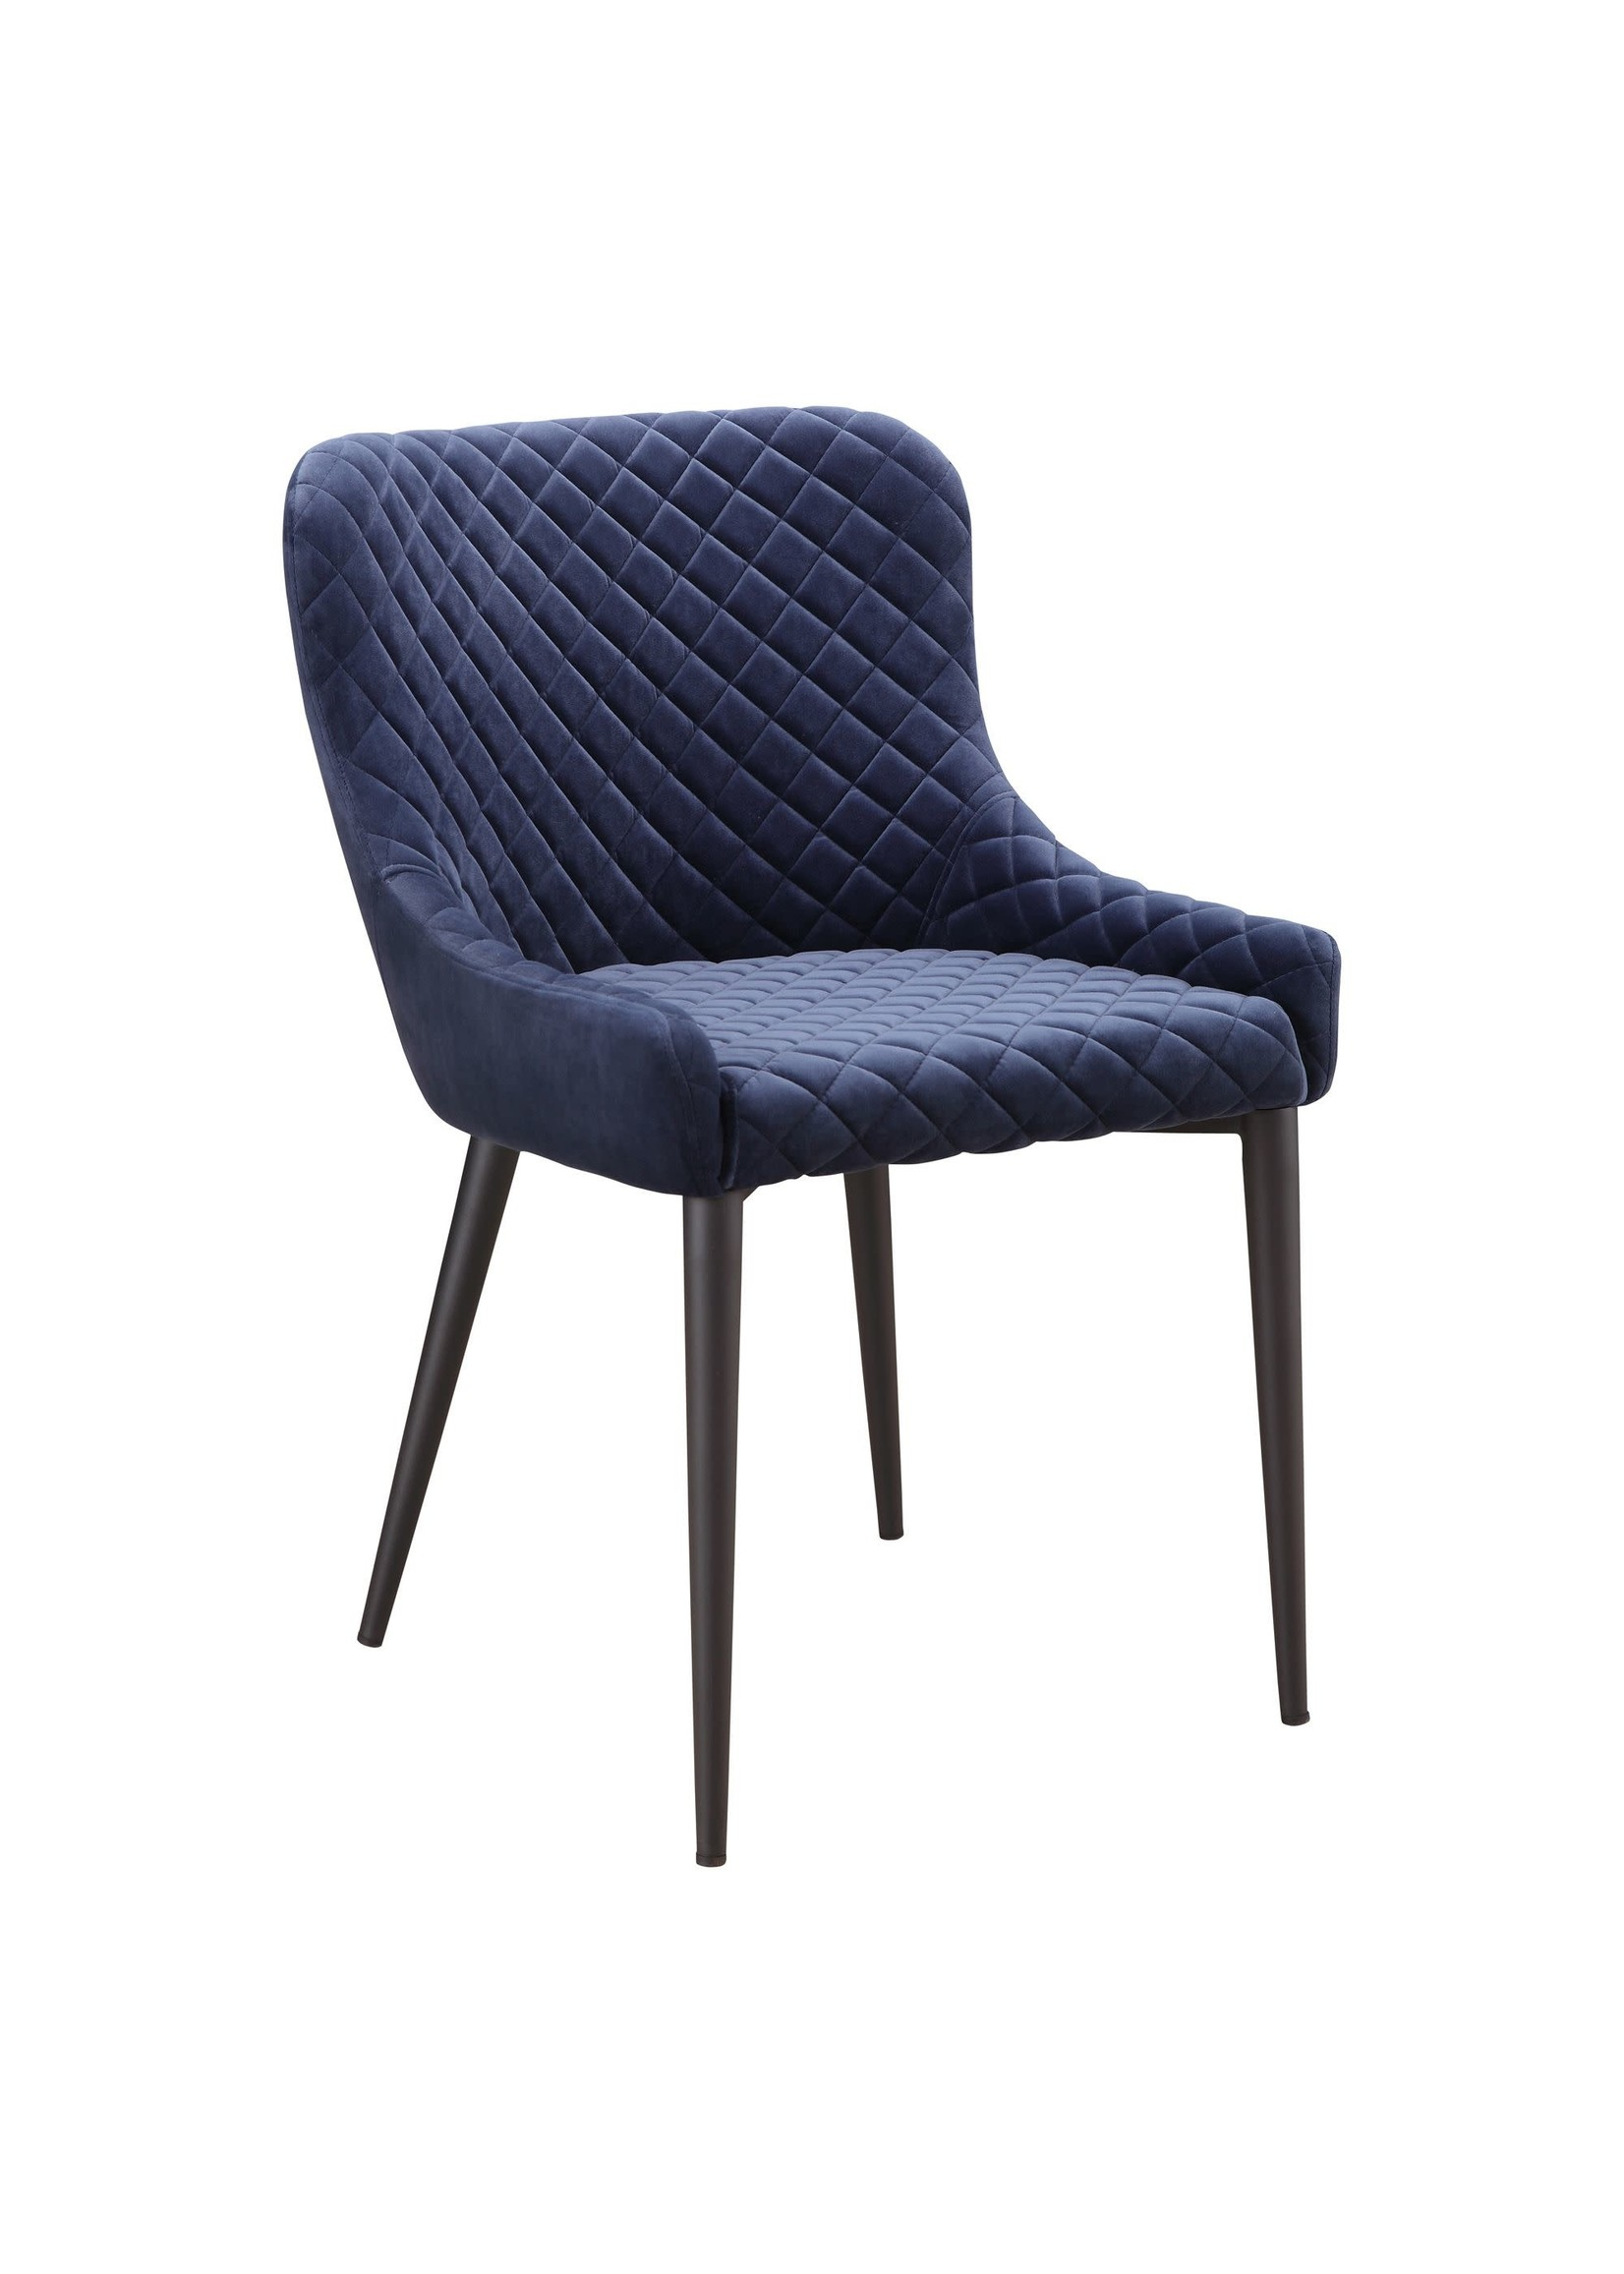 Moes Home Collection Etta Dining Chair Dark Blue by MOES